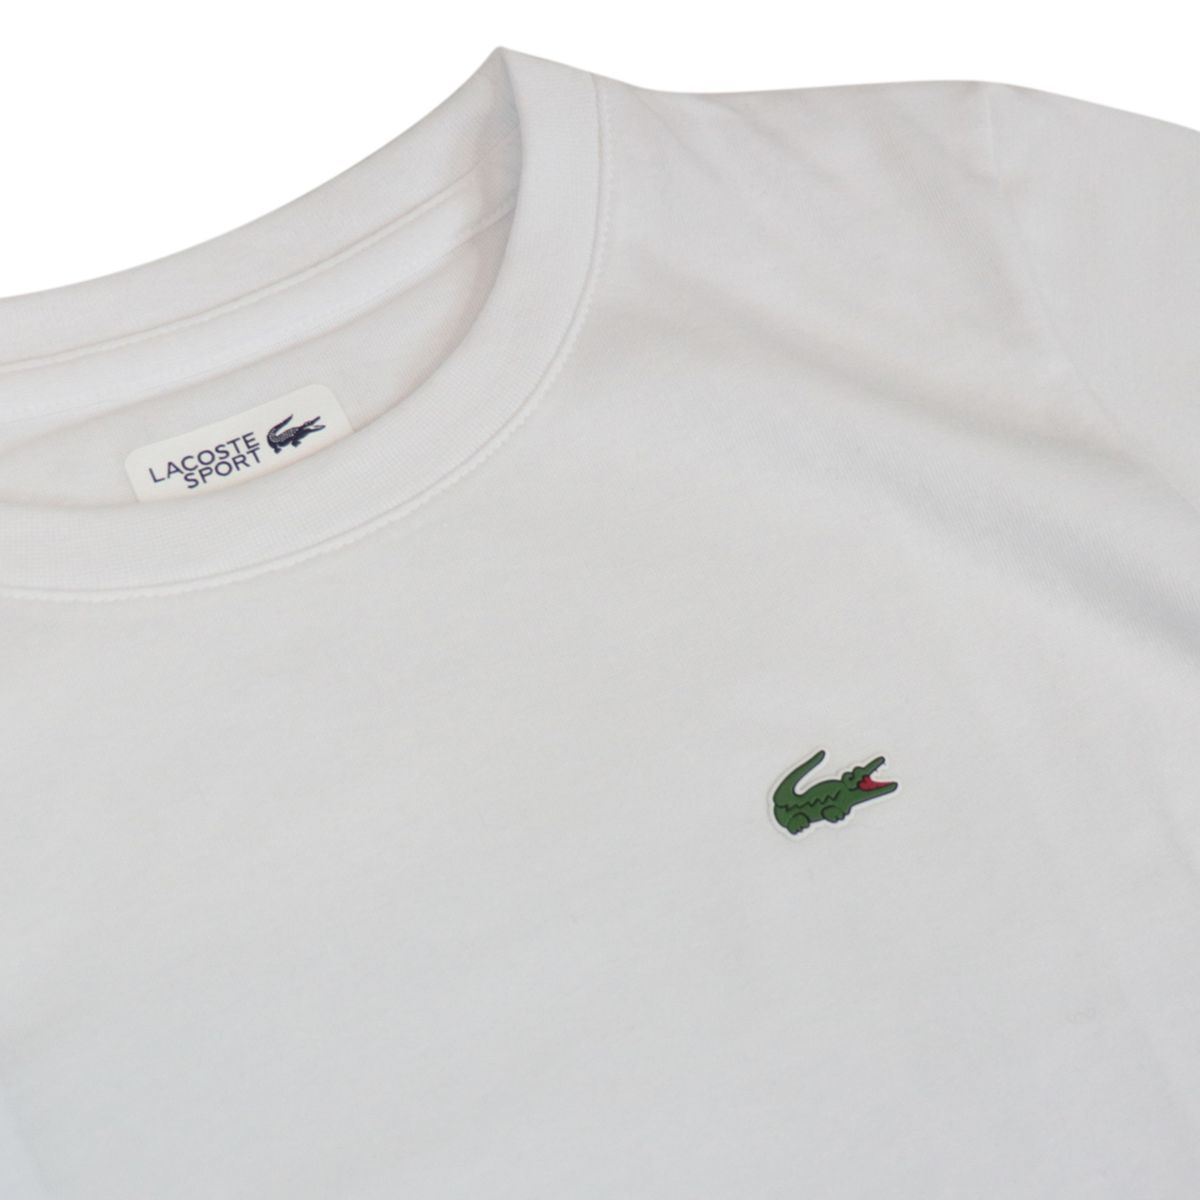 Ultra-Dry cotton blend T-shirt with small logo White Lacoste